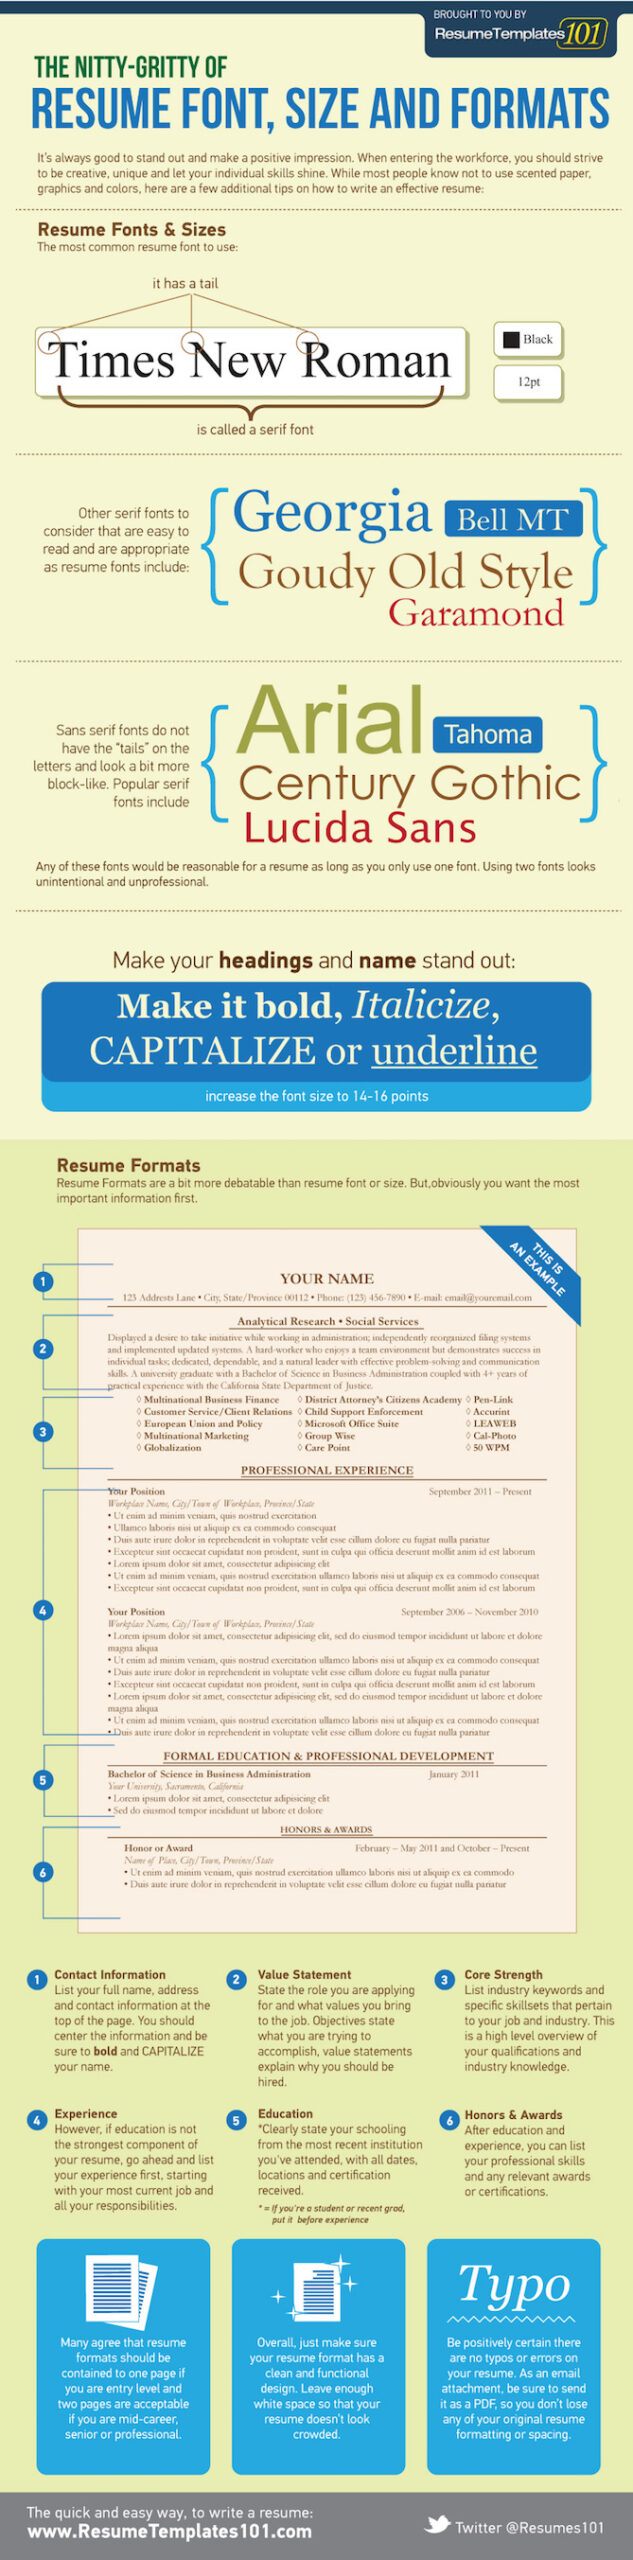 resume format tips you need to know in sample formats included guidelines infographic and Resume Resume Format Guidelines